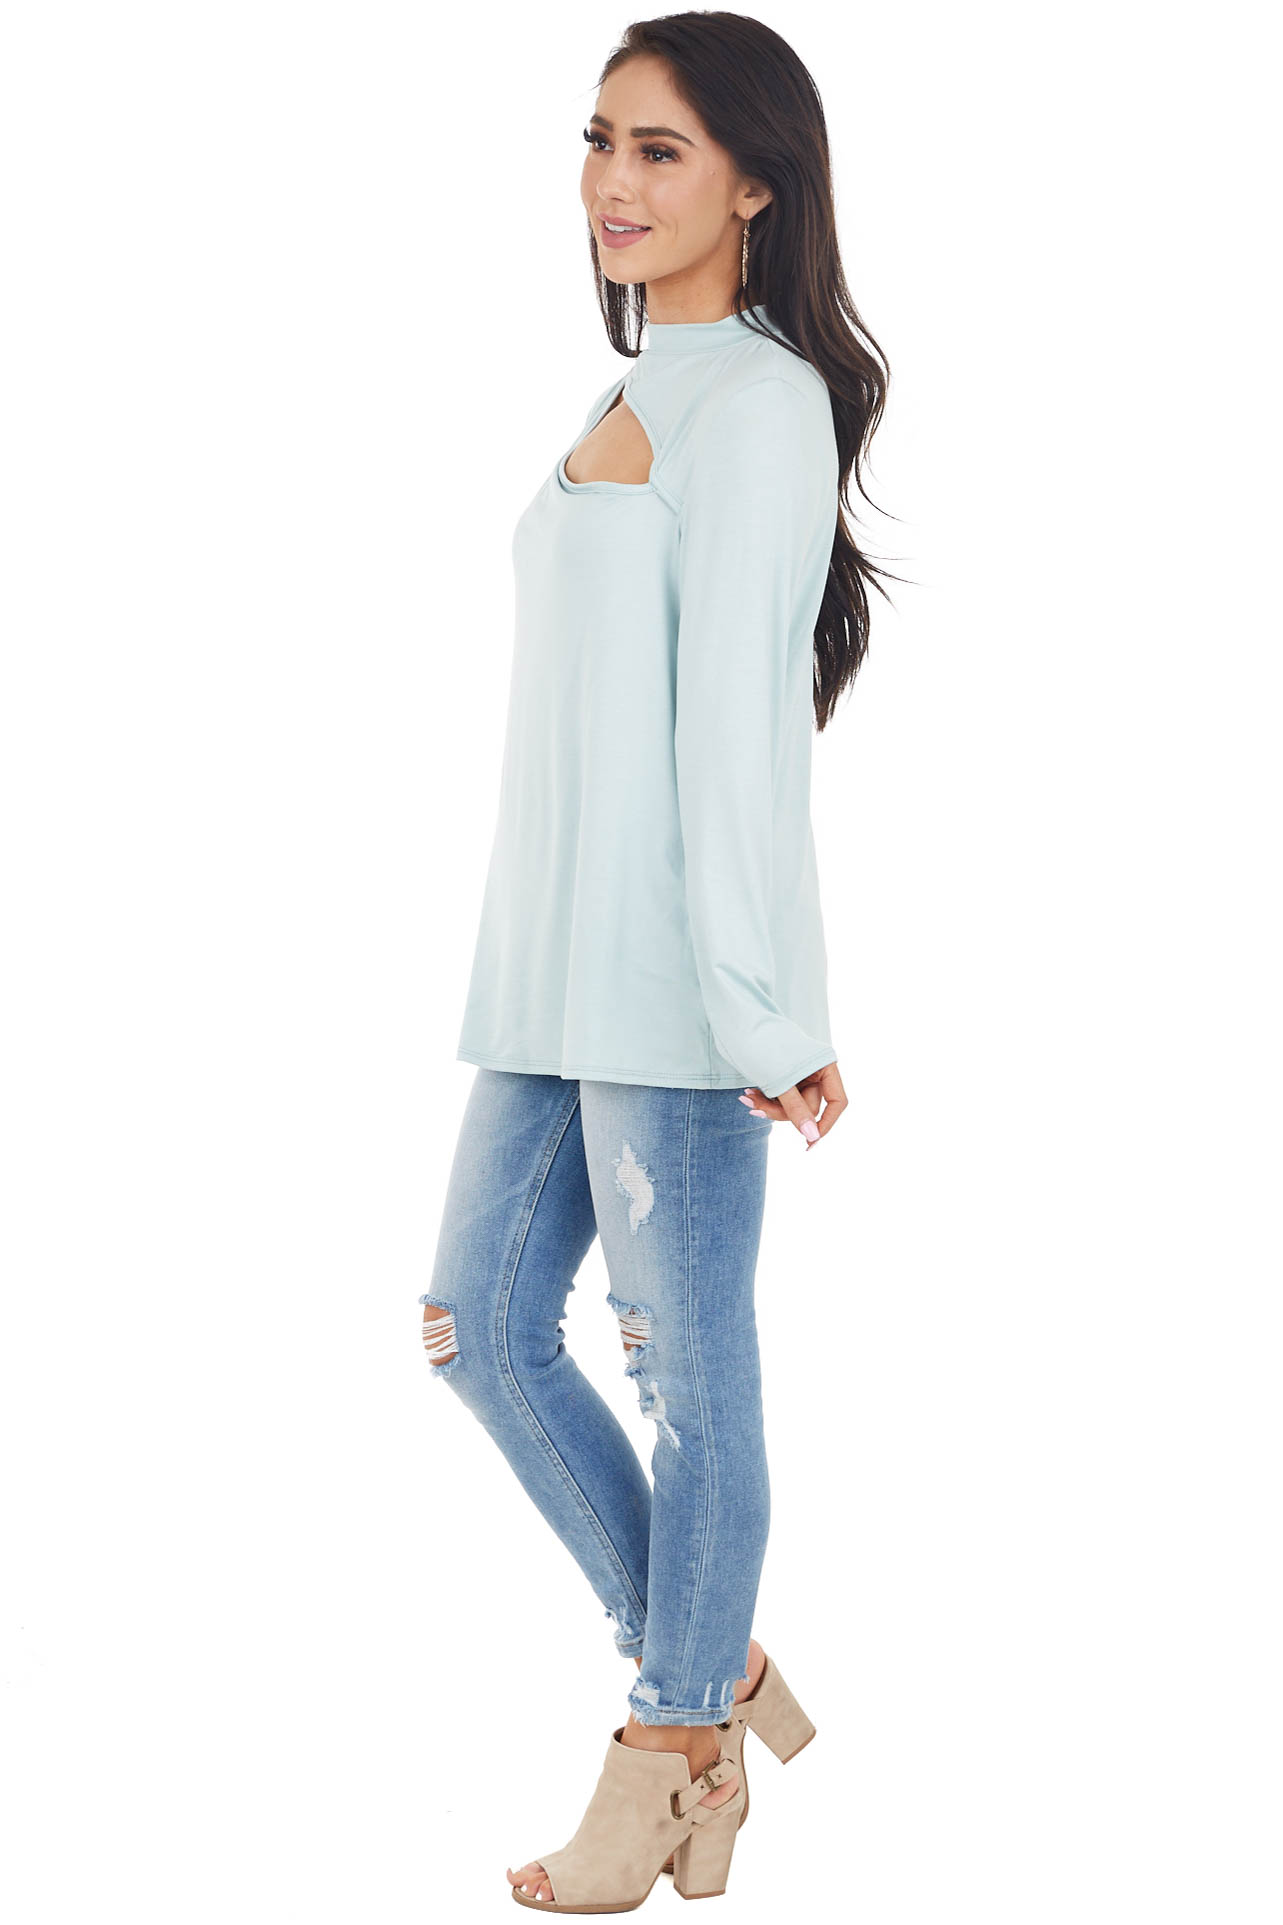 Sky Blue Chest Cut Out Stretchy Knit Top with Long Sleeves